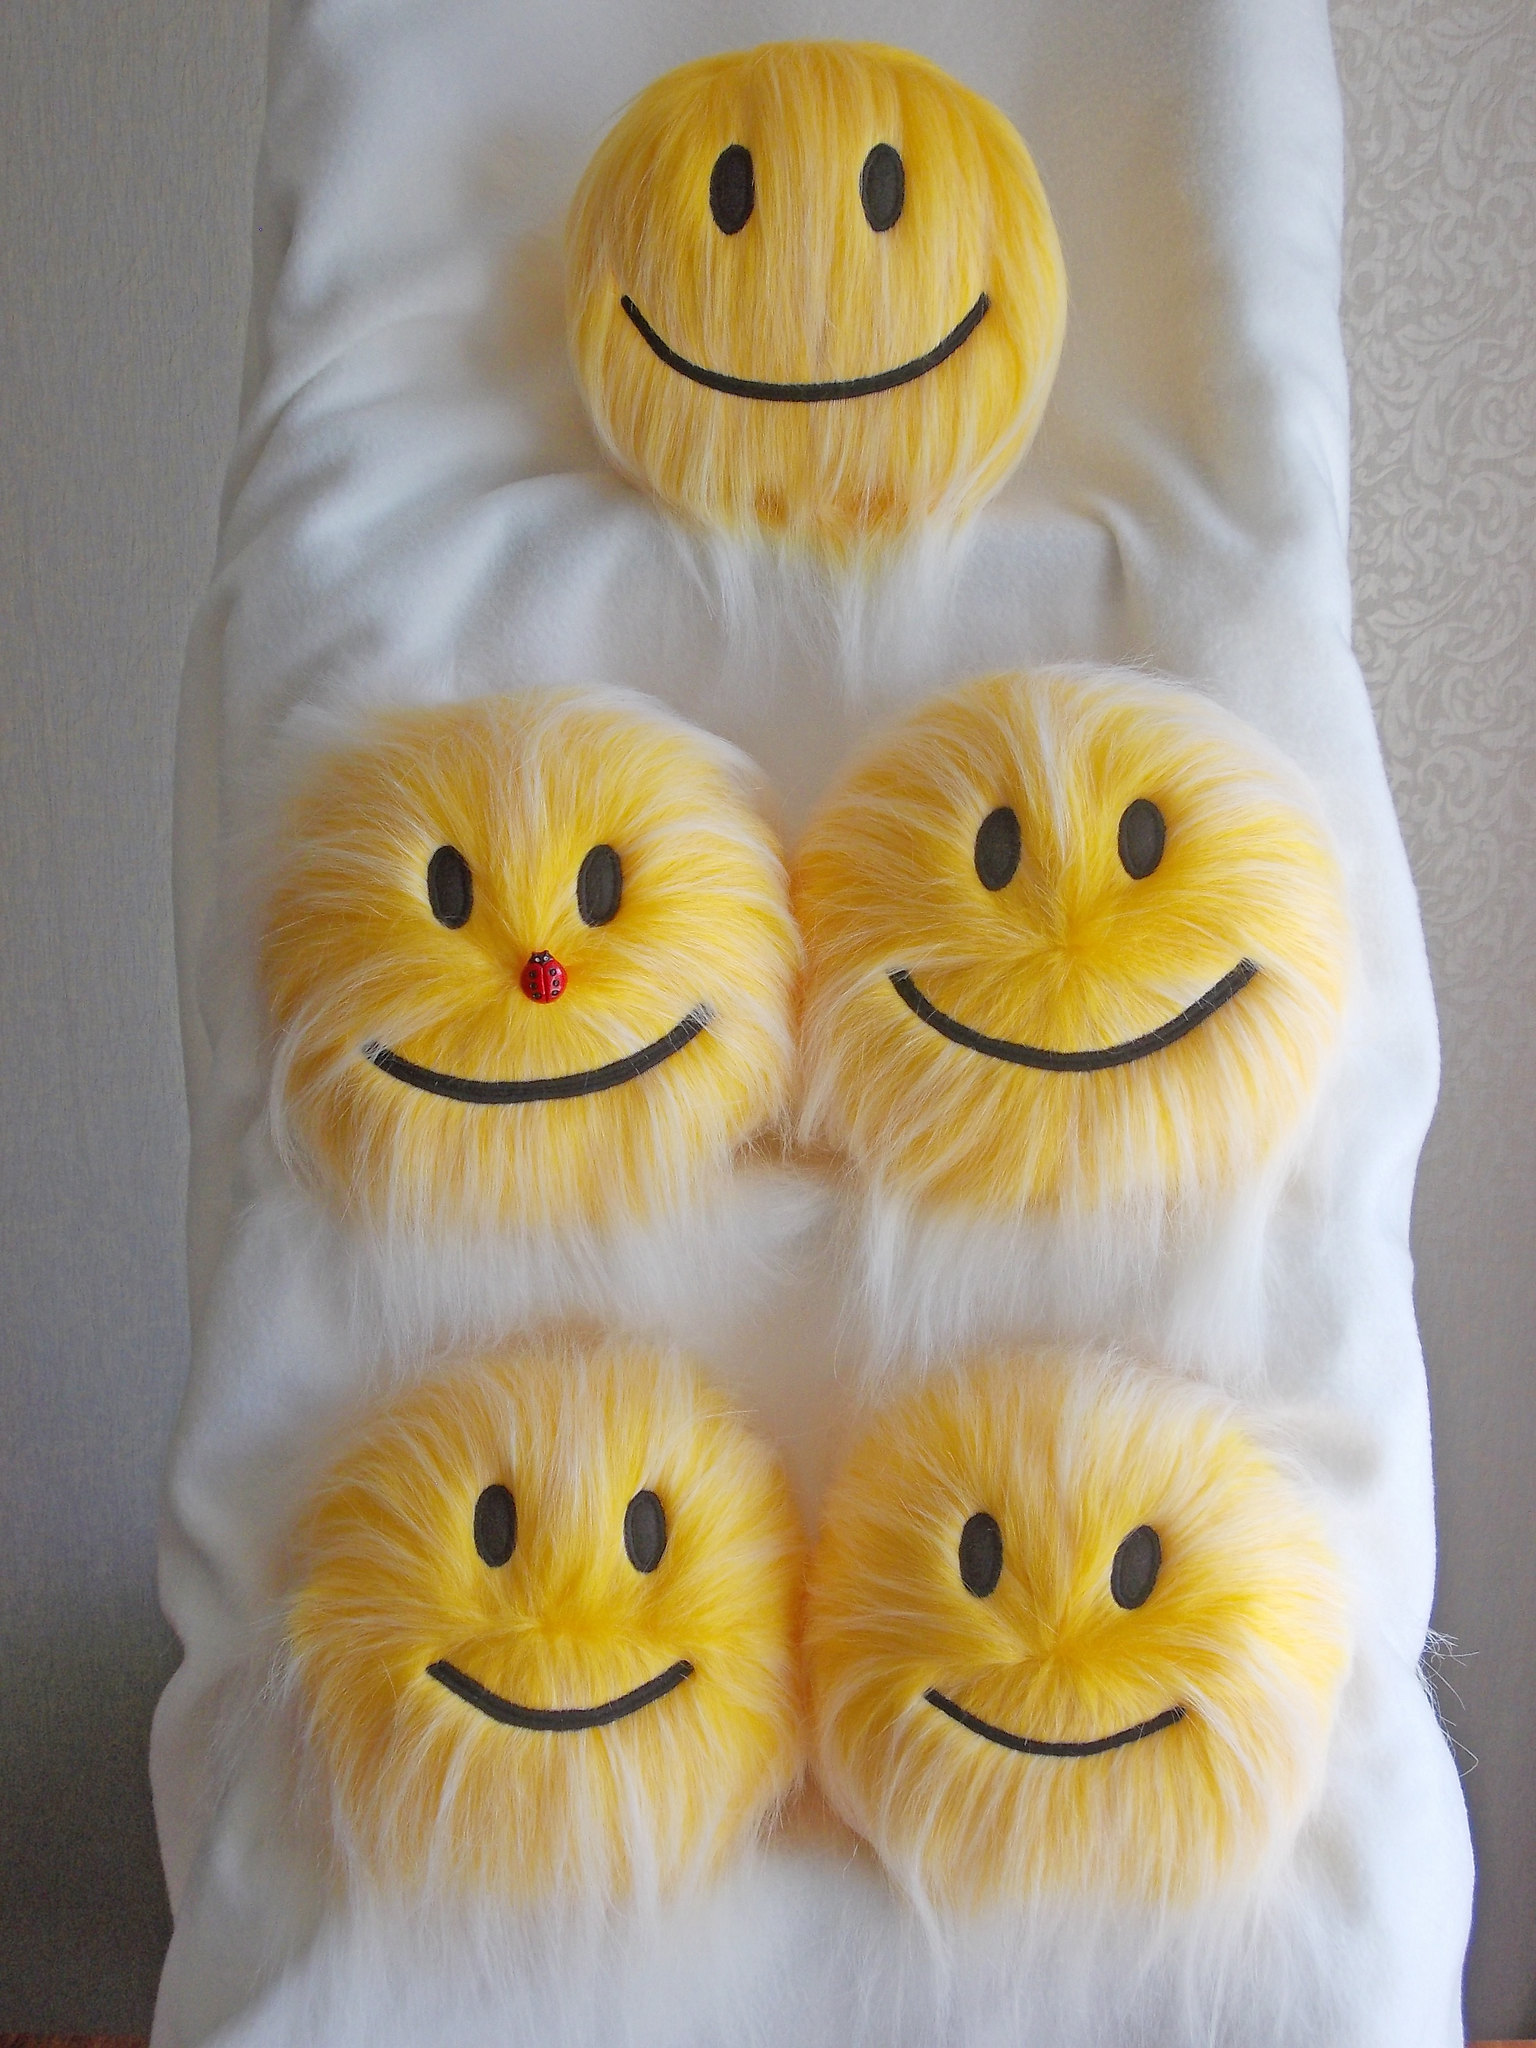 furry yellow plush smiley face stuffed toys_3